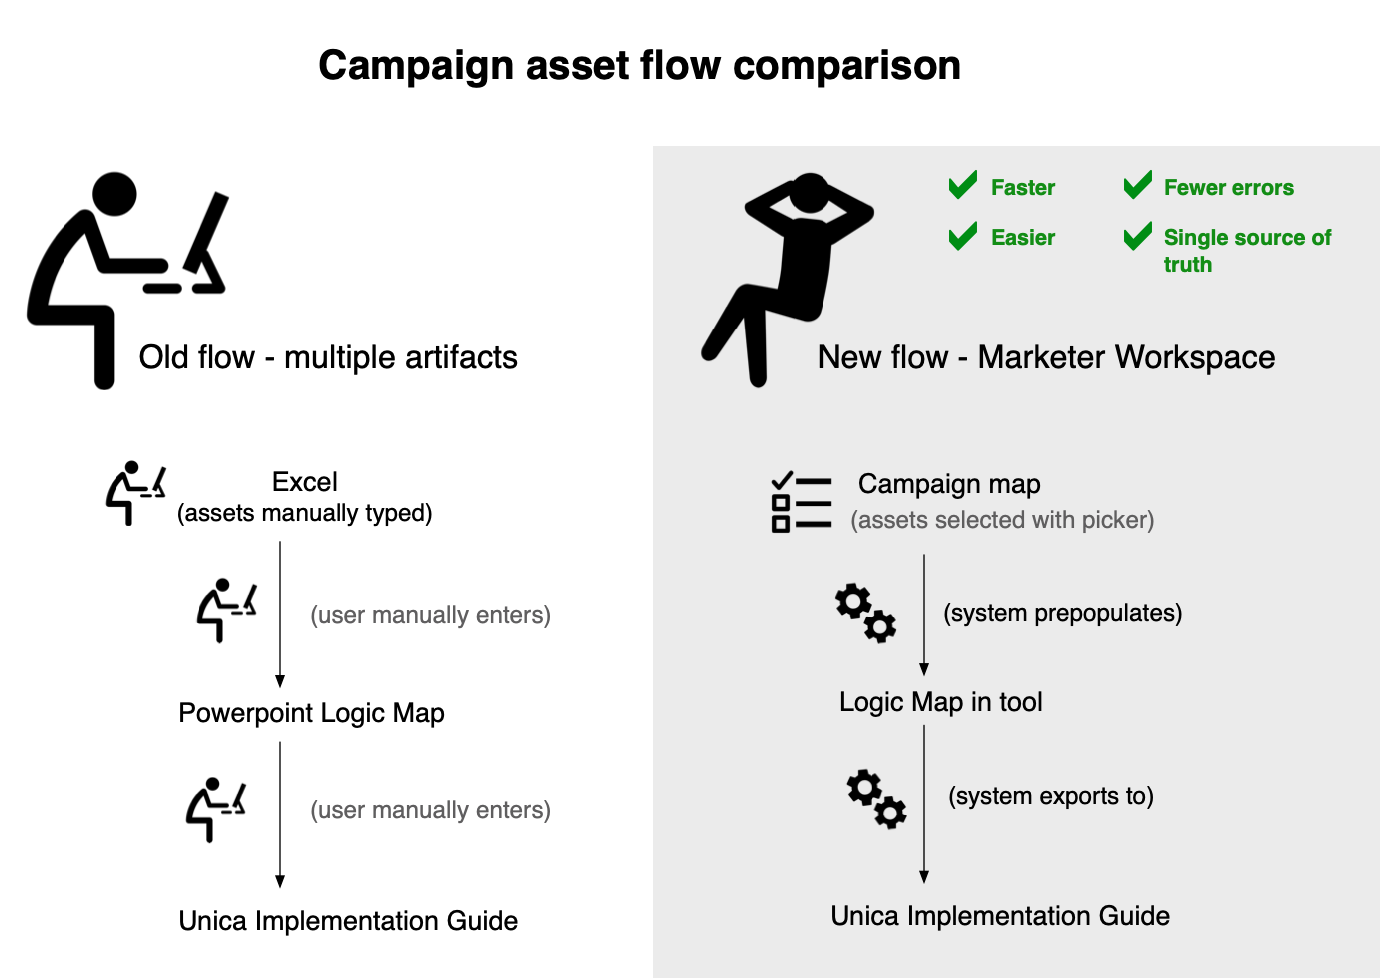 graphic showing the benefits of automating the flow of assets from the Marketer Workspace Campaign map, through the Logic View, and into the Unica Implementation Guide